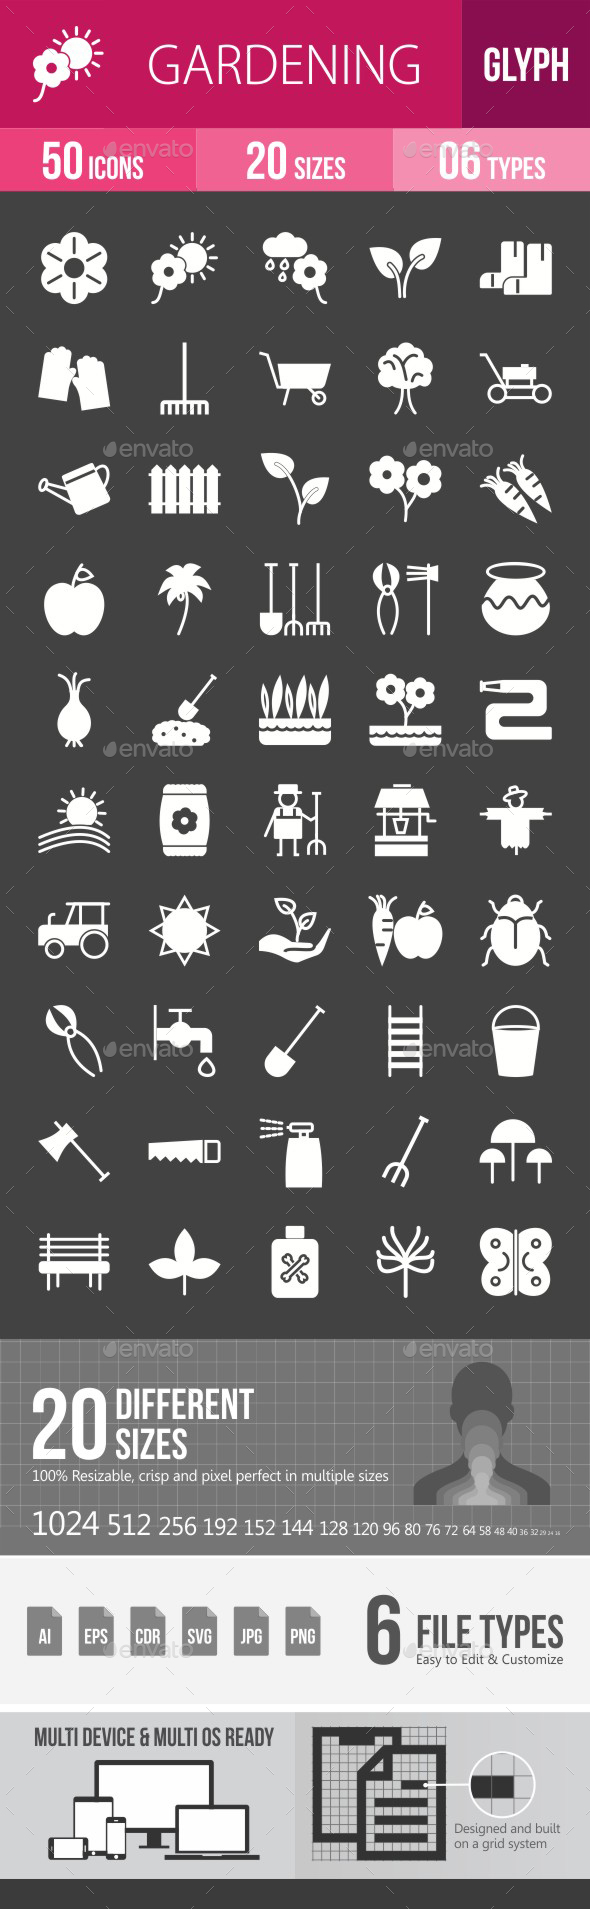 Gardening Glyph Inverted Icons - Icons